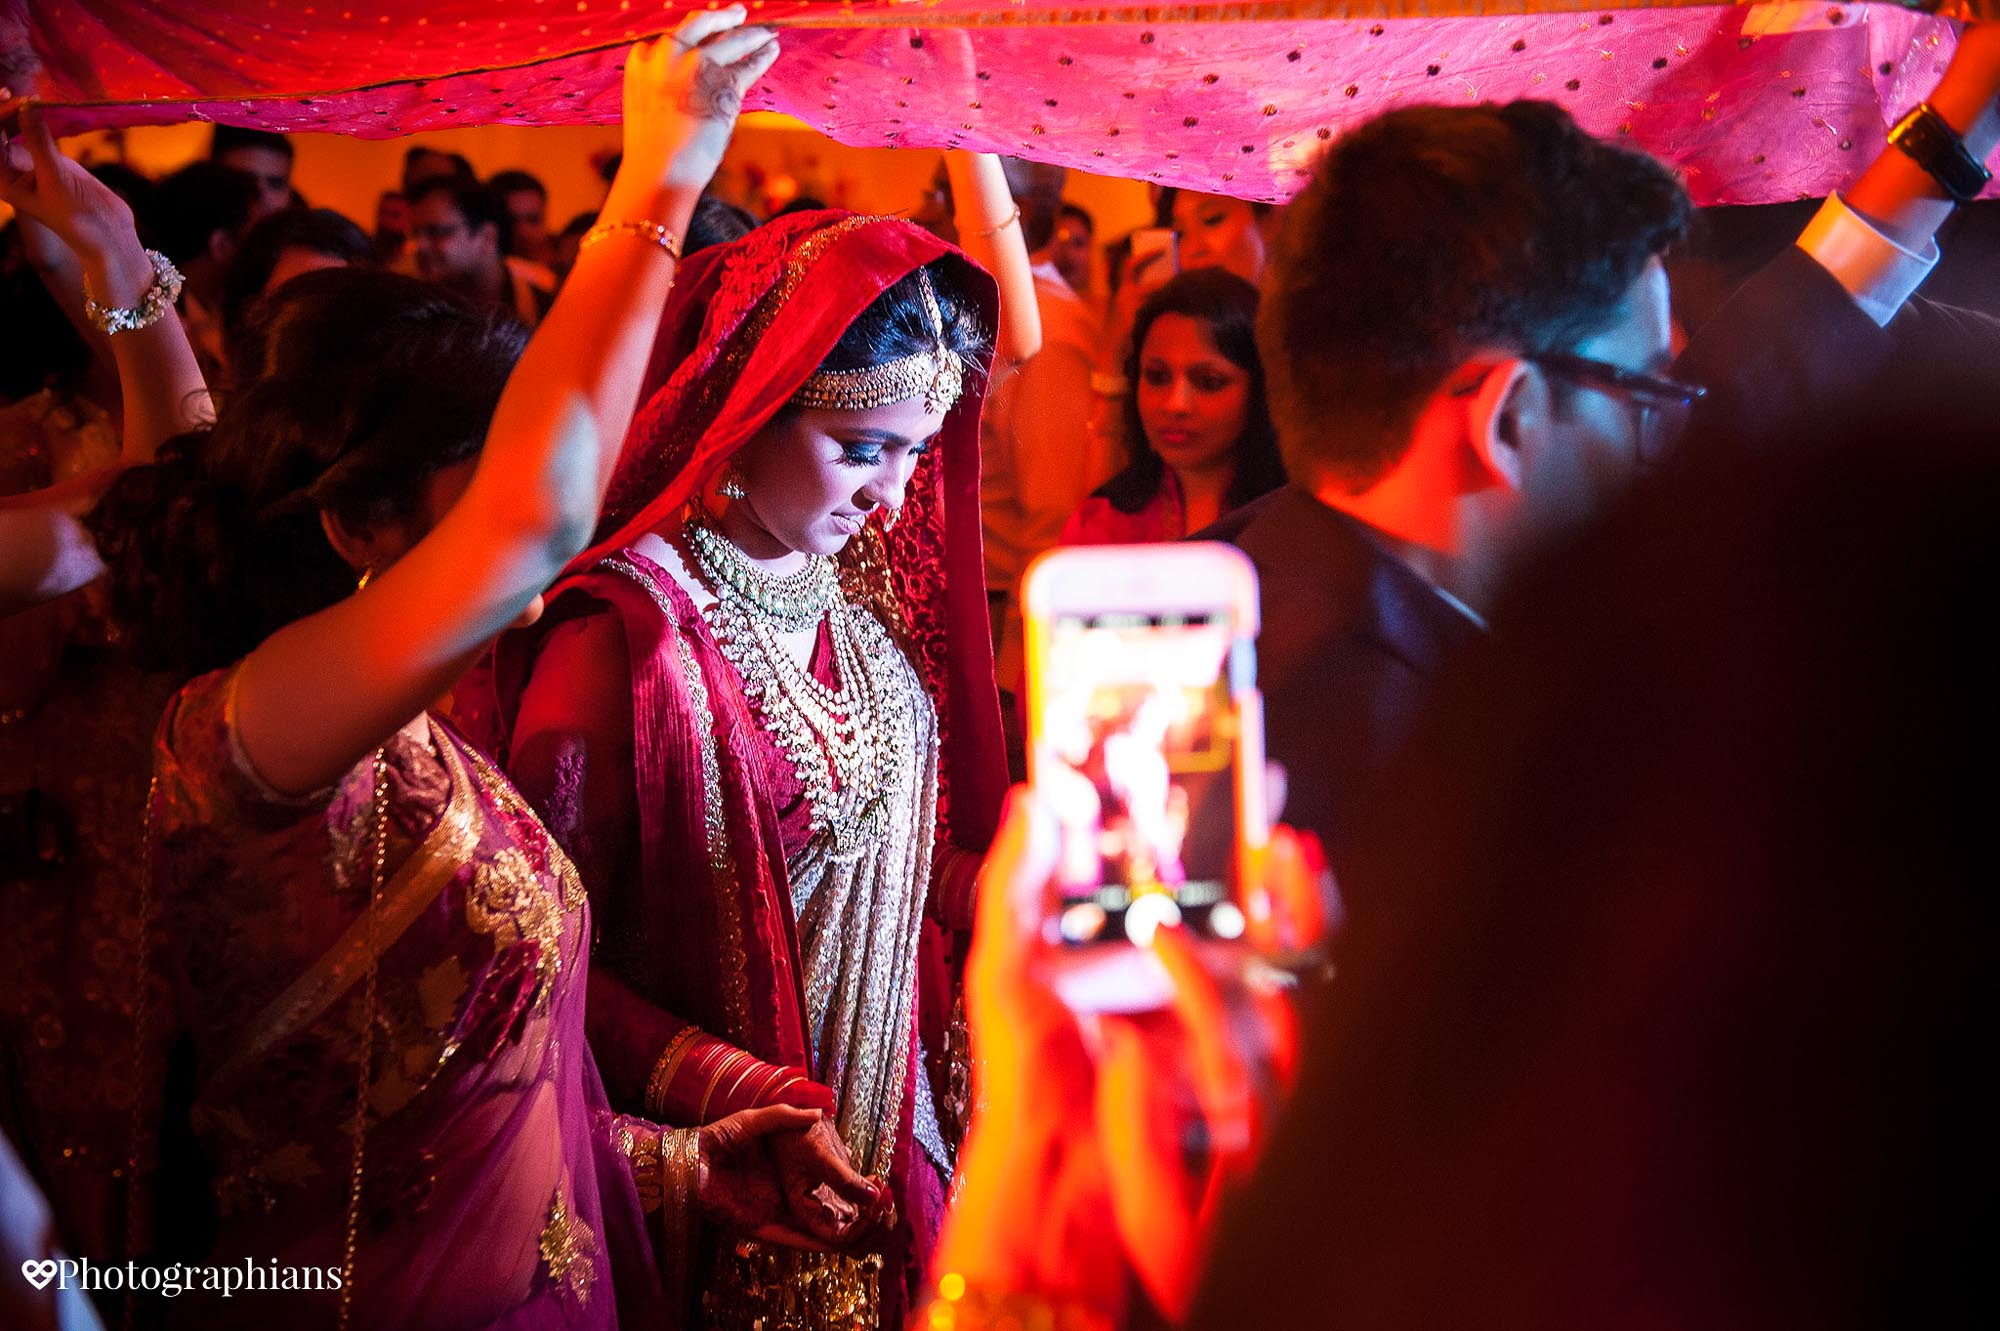 Punjabi_Marwari_Wedding_Kolkata_Photographians_-VIDHI-210